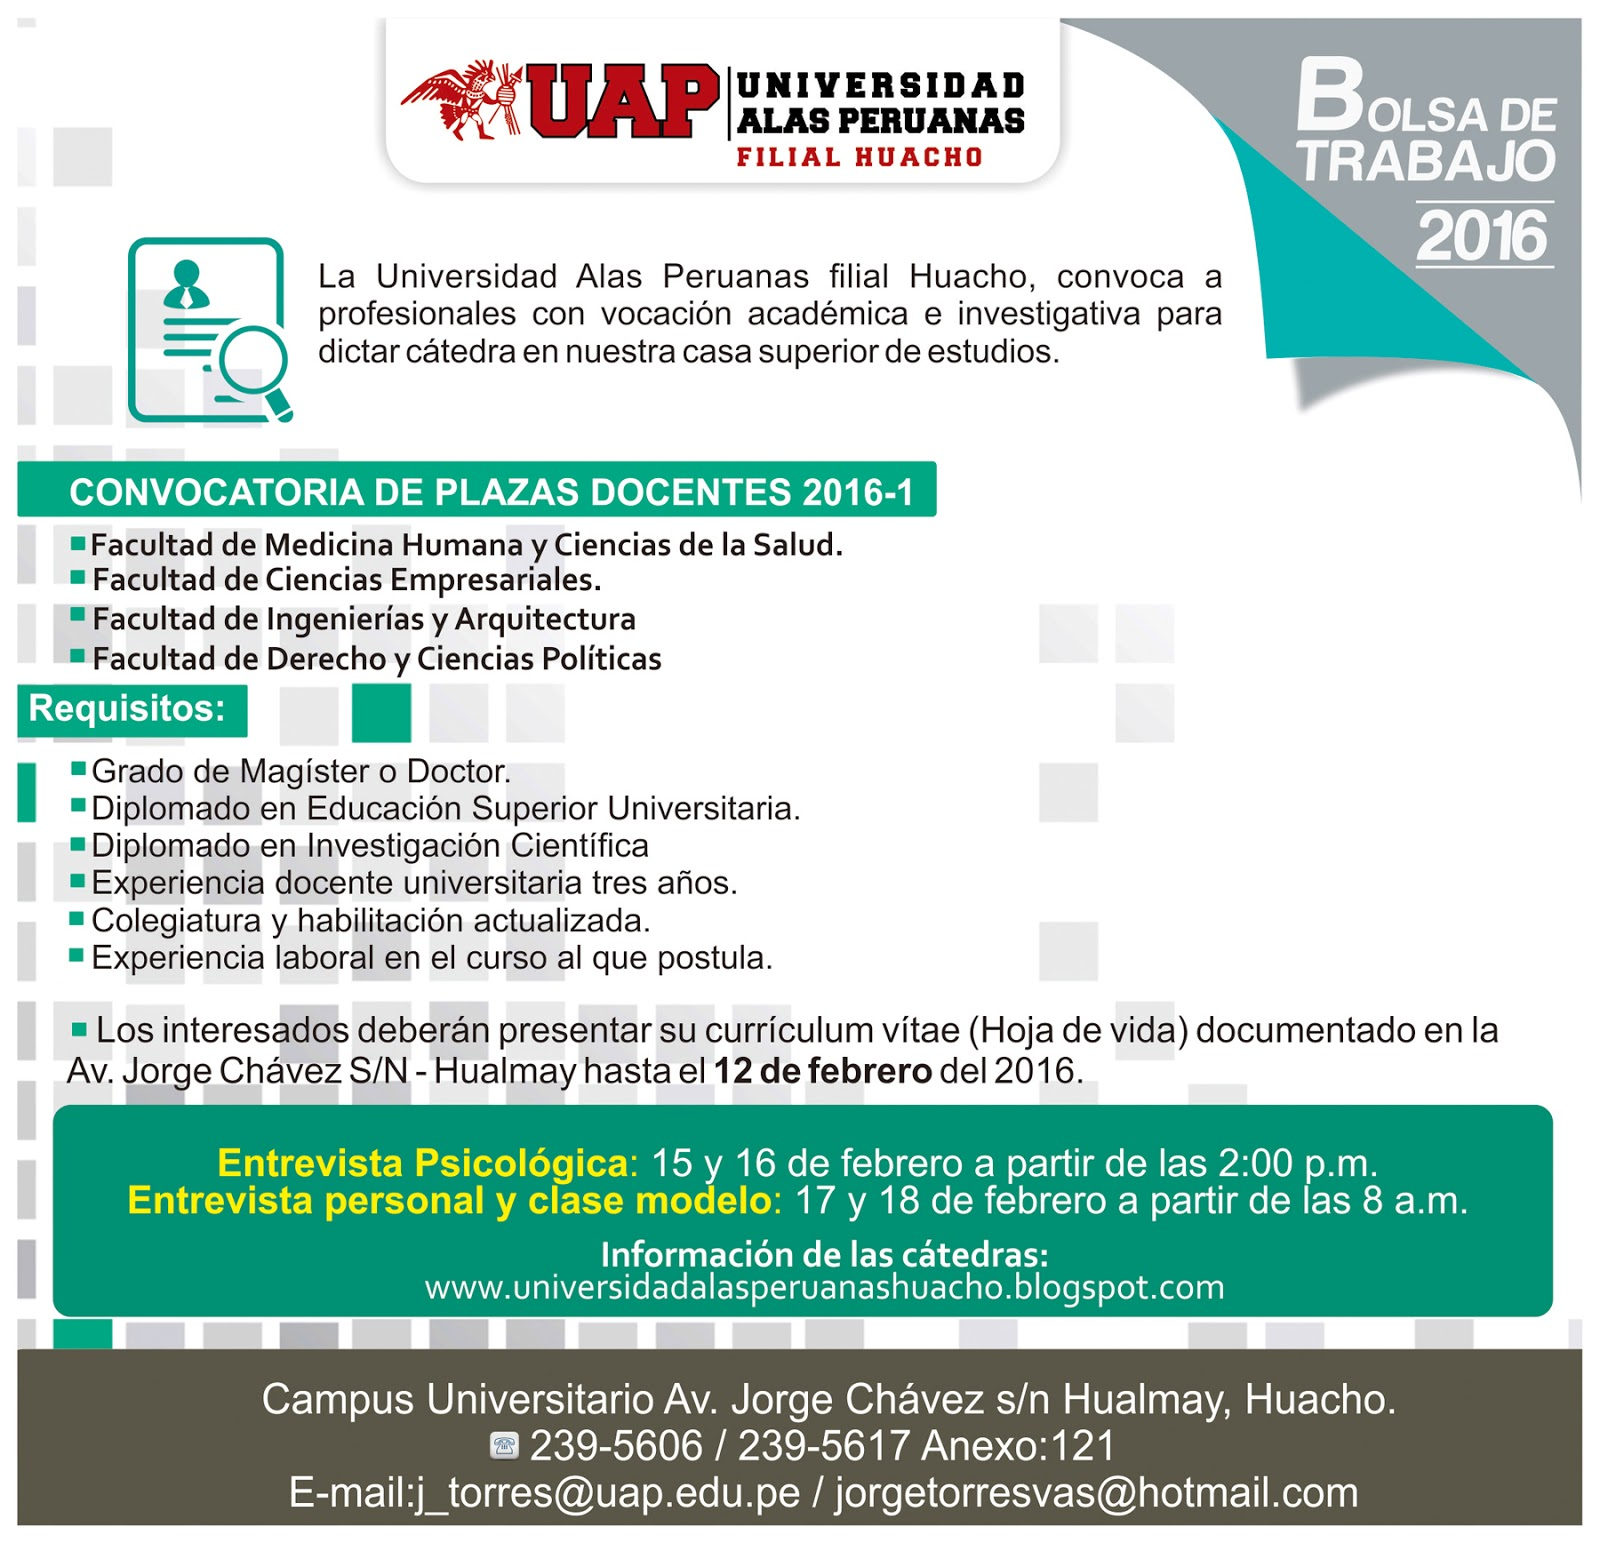 Universidad alas peruanas filial huacho convocatoria de for Sep convocatoria plazas 2016